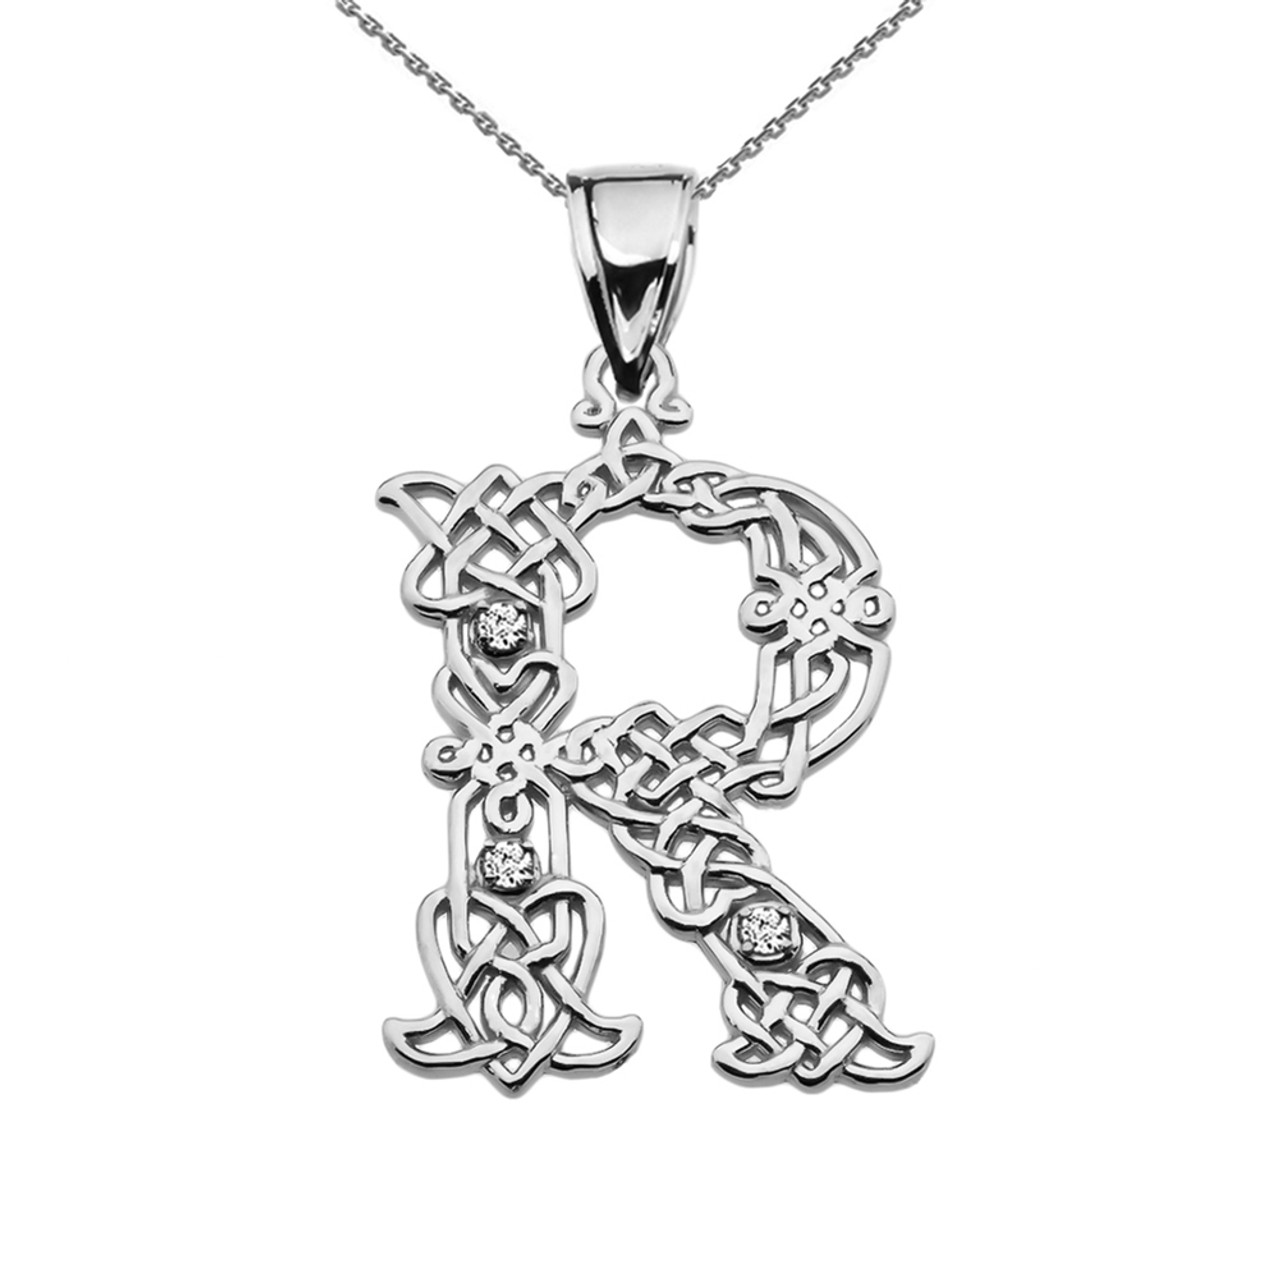 Cz r initial in celtic pattern sterling silver pendant necklace r initial in celtic knot pattern sterling silver pendant necklace with cz mozeypictures